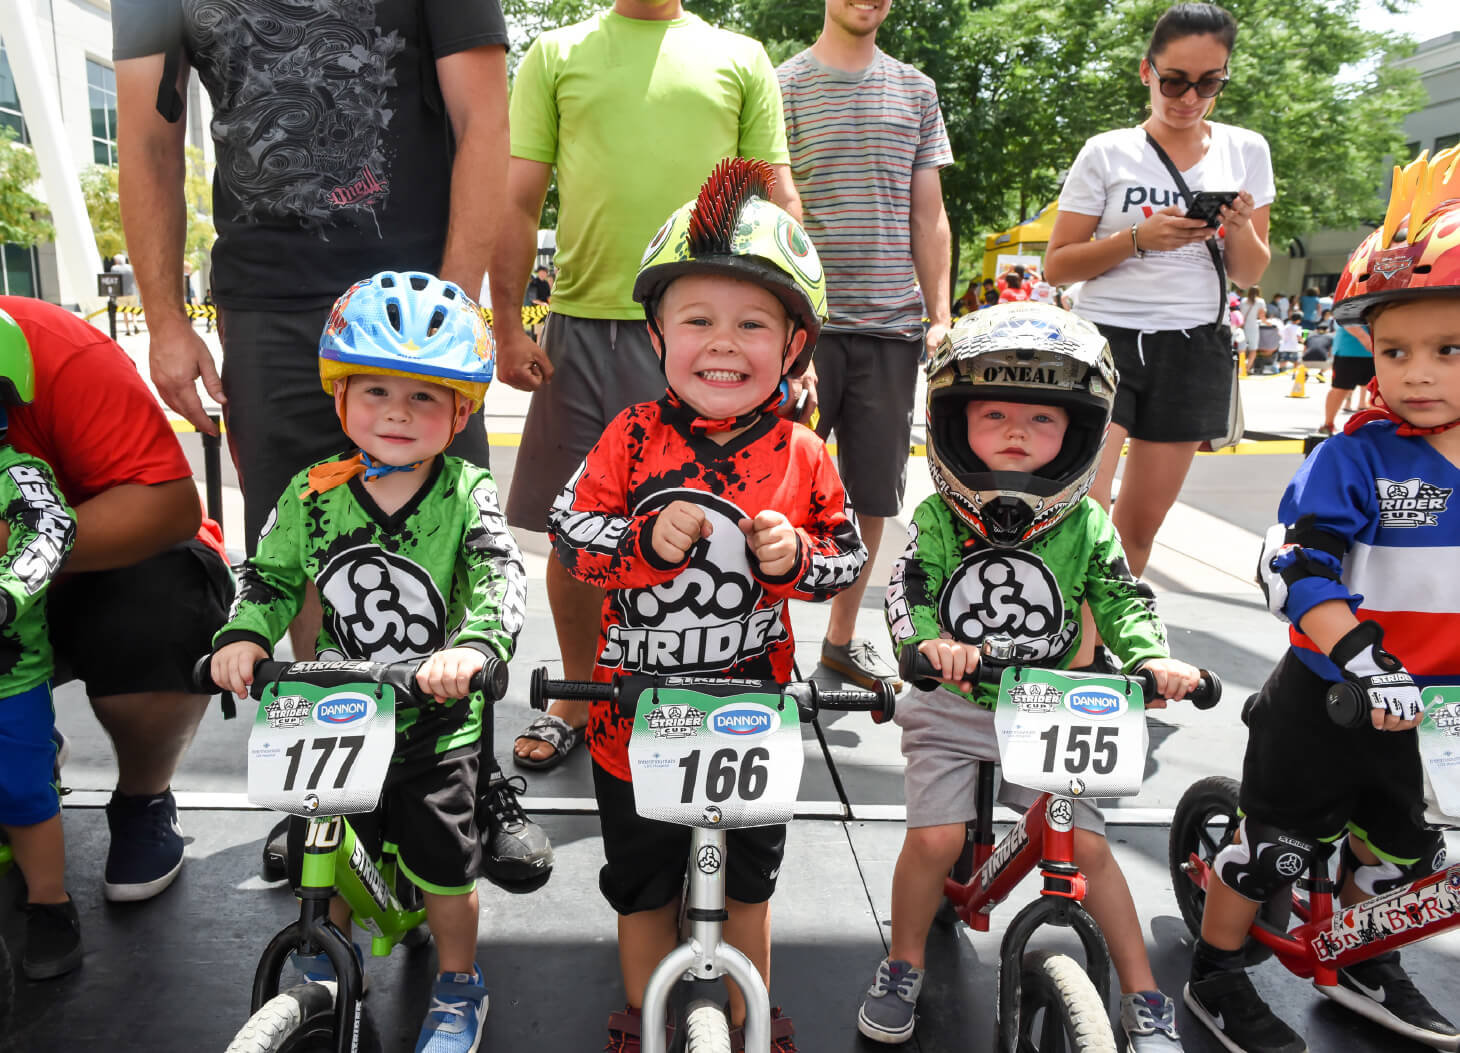 Strider Racing Events